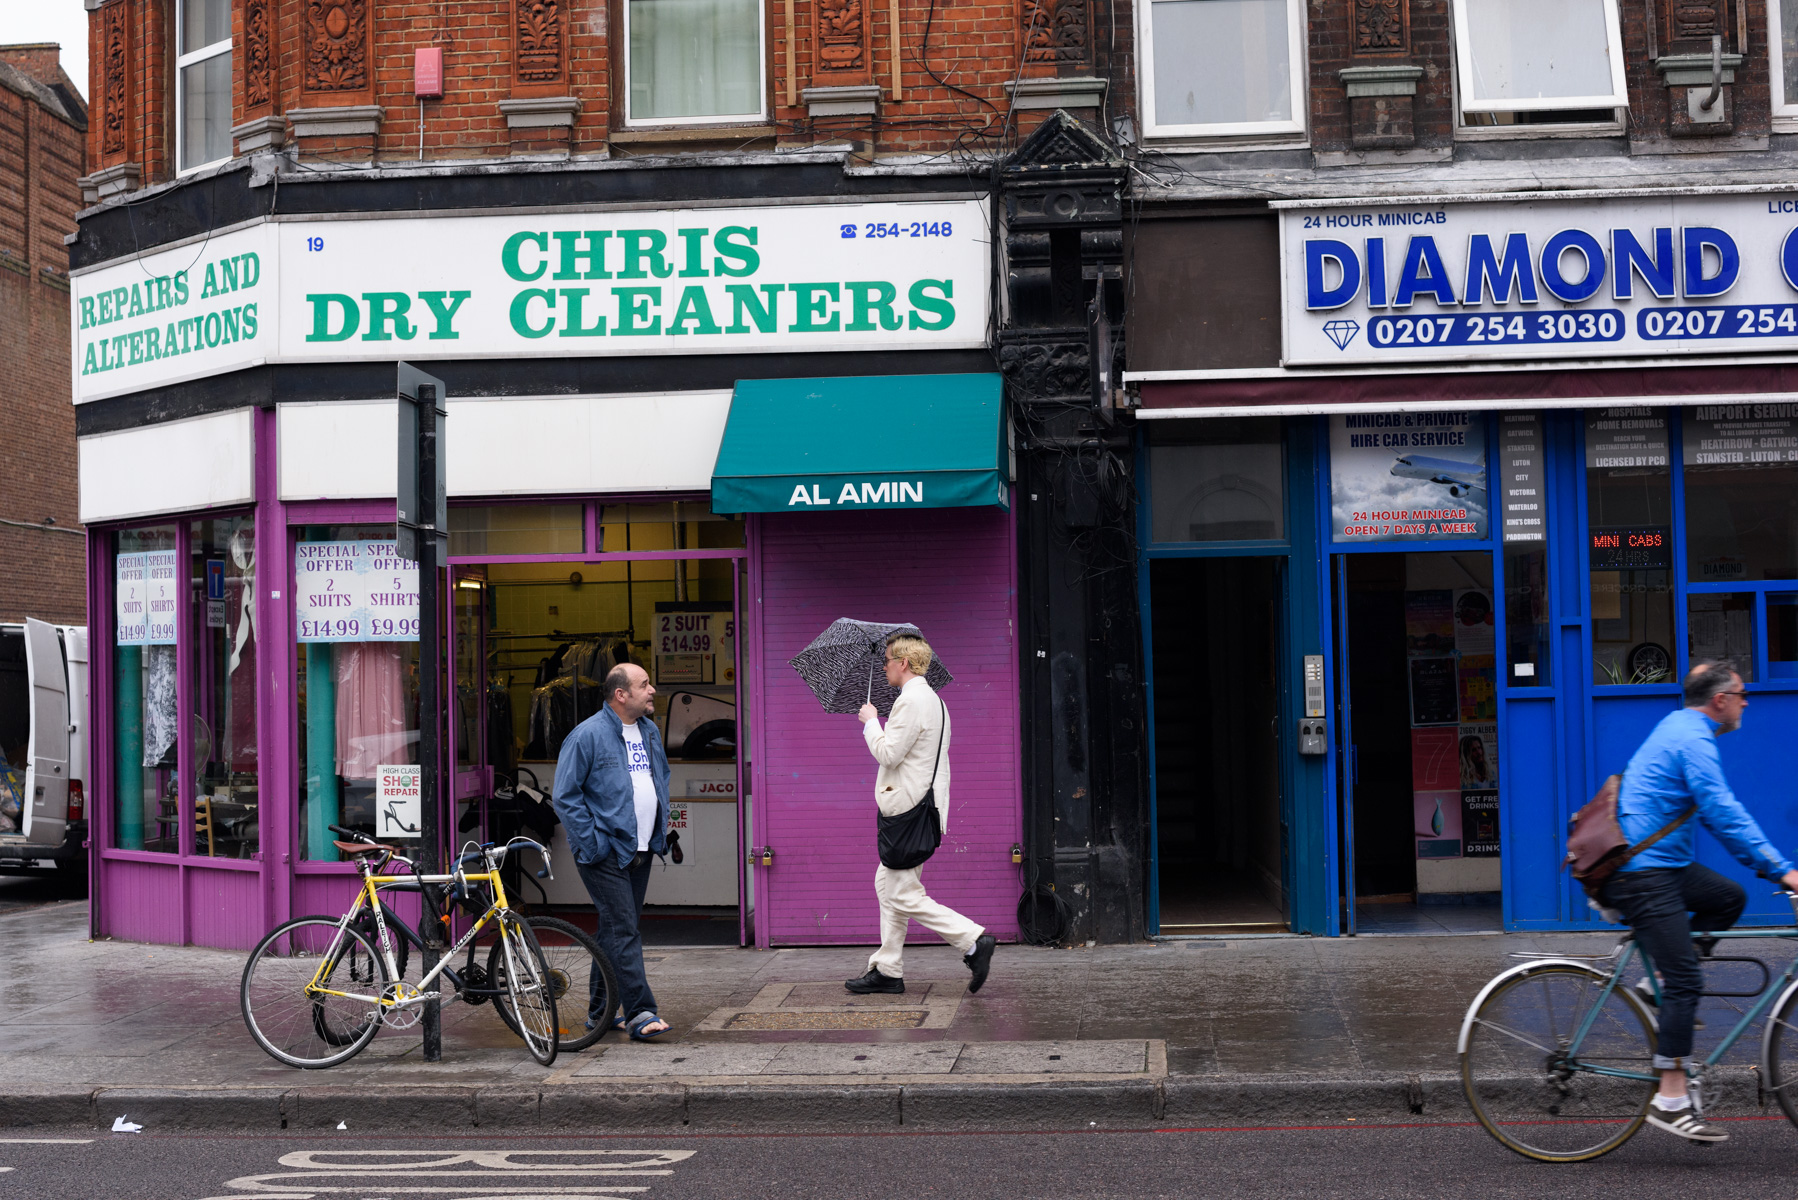 Chris Dry Cleaners